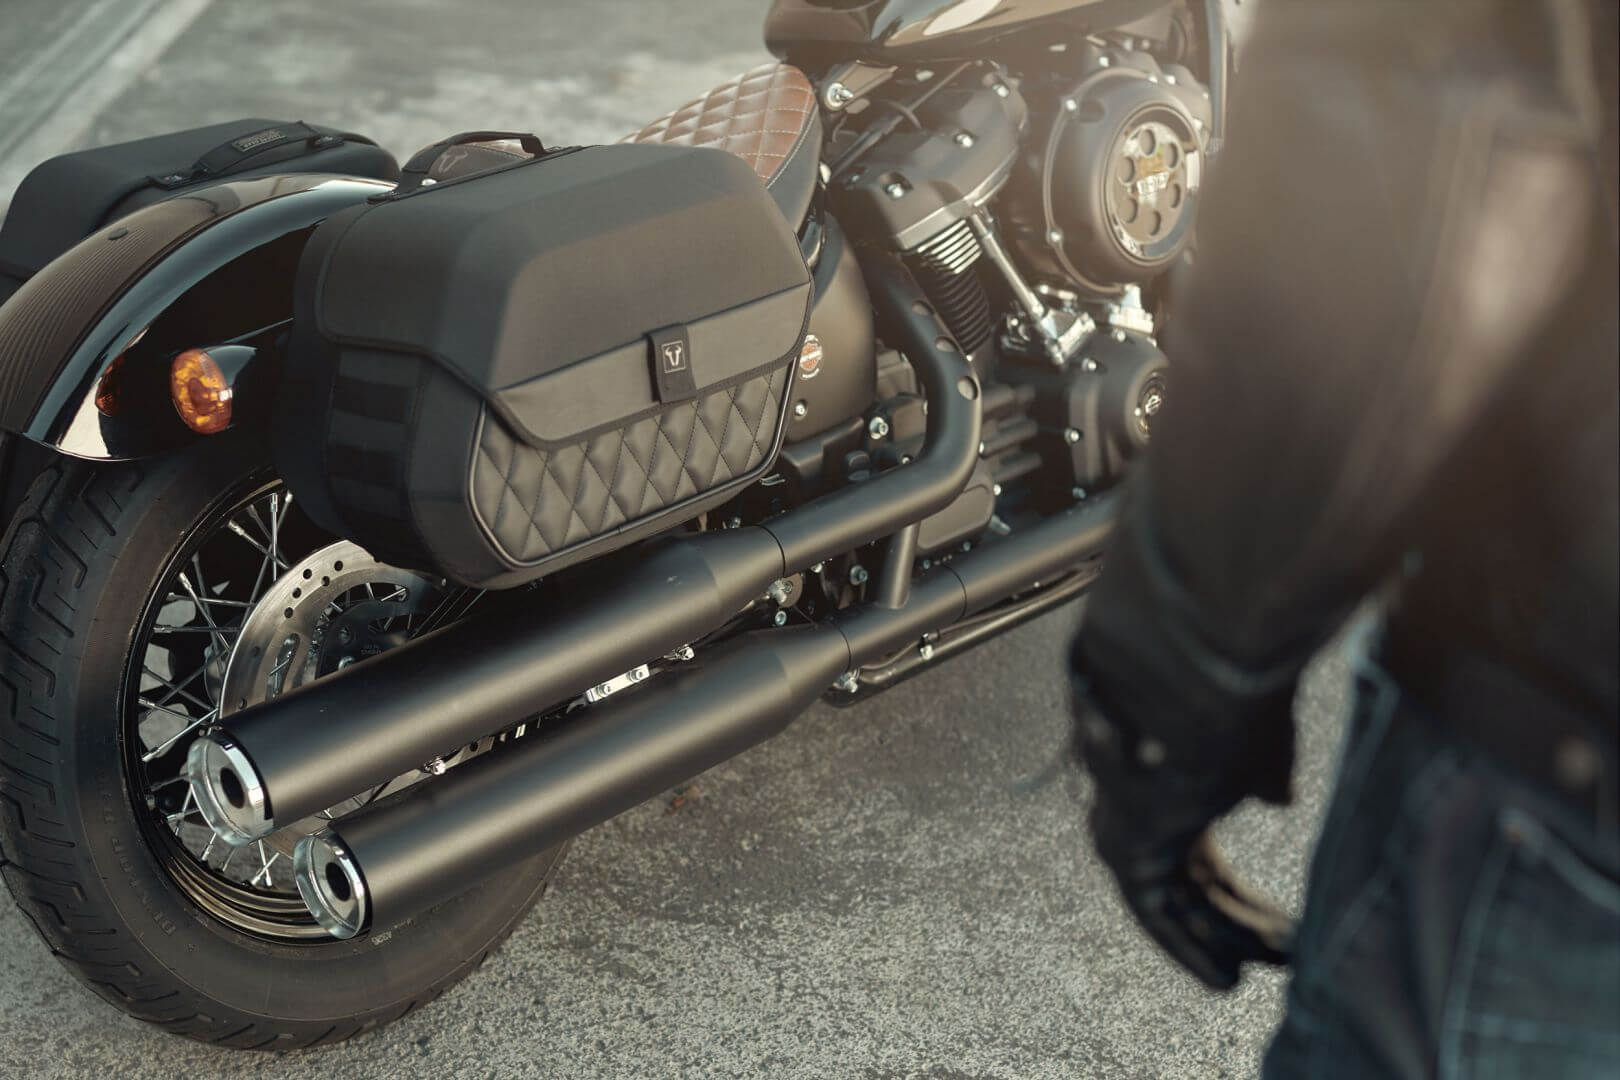 SW-MOTECH side bags exclusively for Harley-Davidson - SW-MOTECH